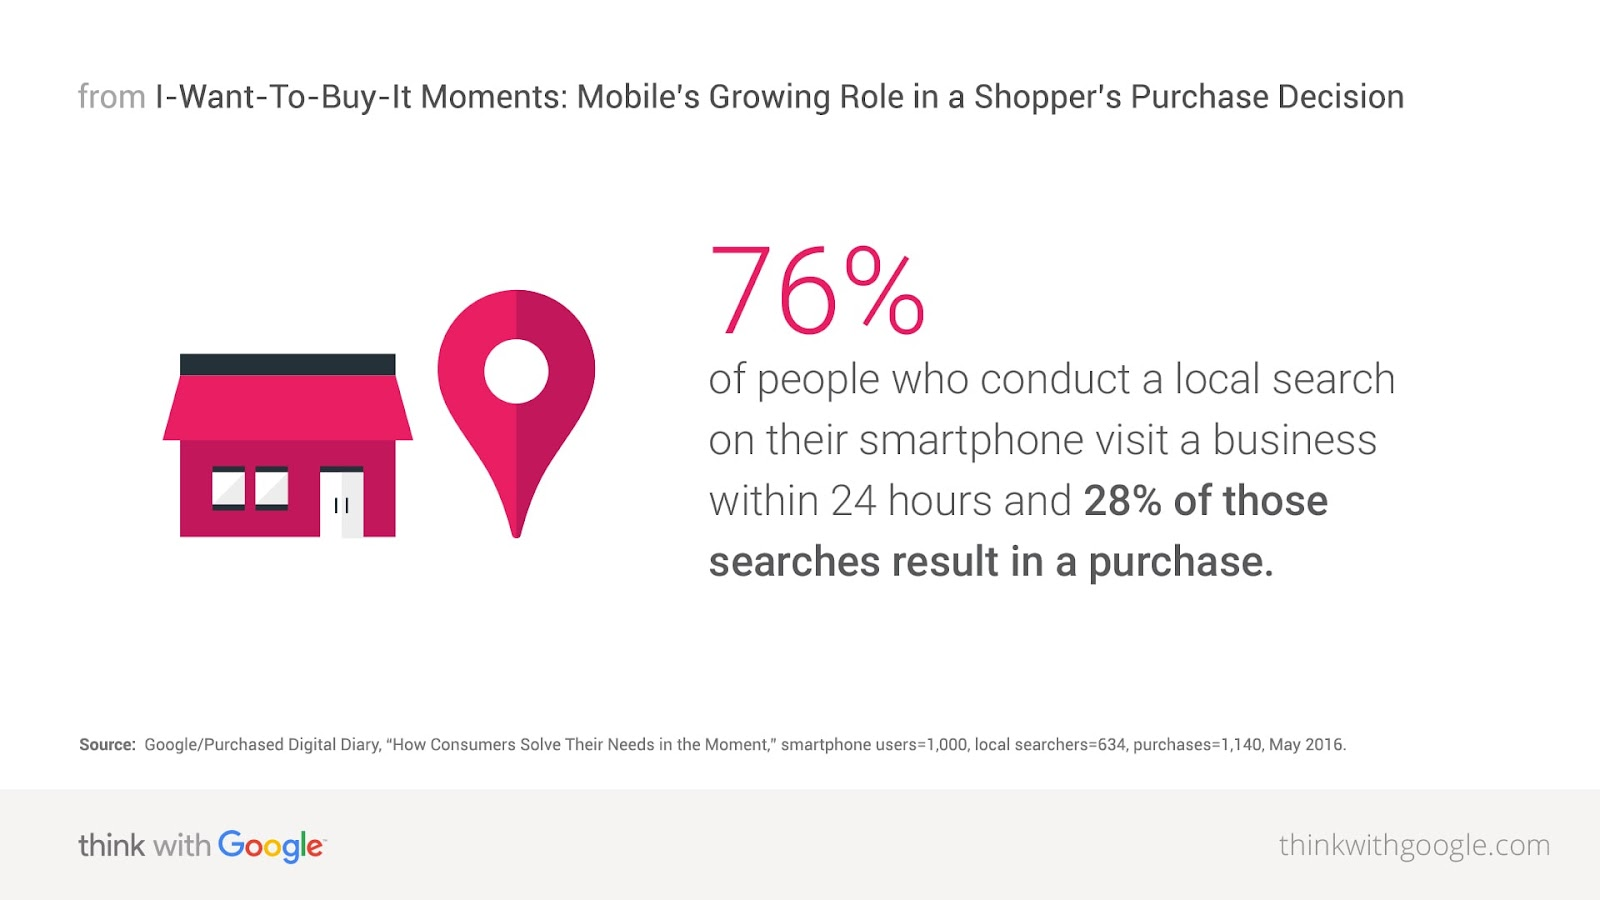 76% of people who do a local search on their mobile phone visit a business within 24 hours and 28% of these searches result in a purchase.